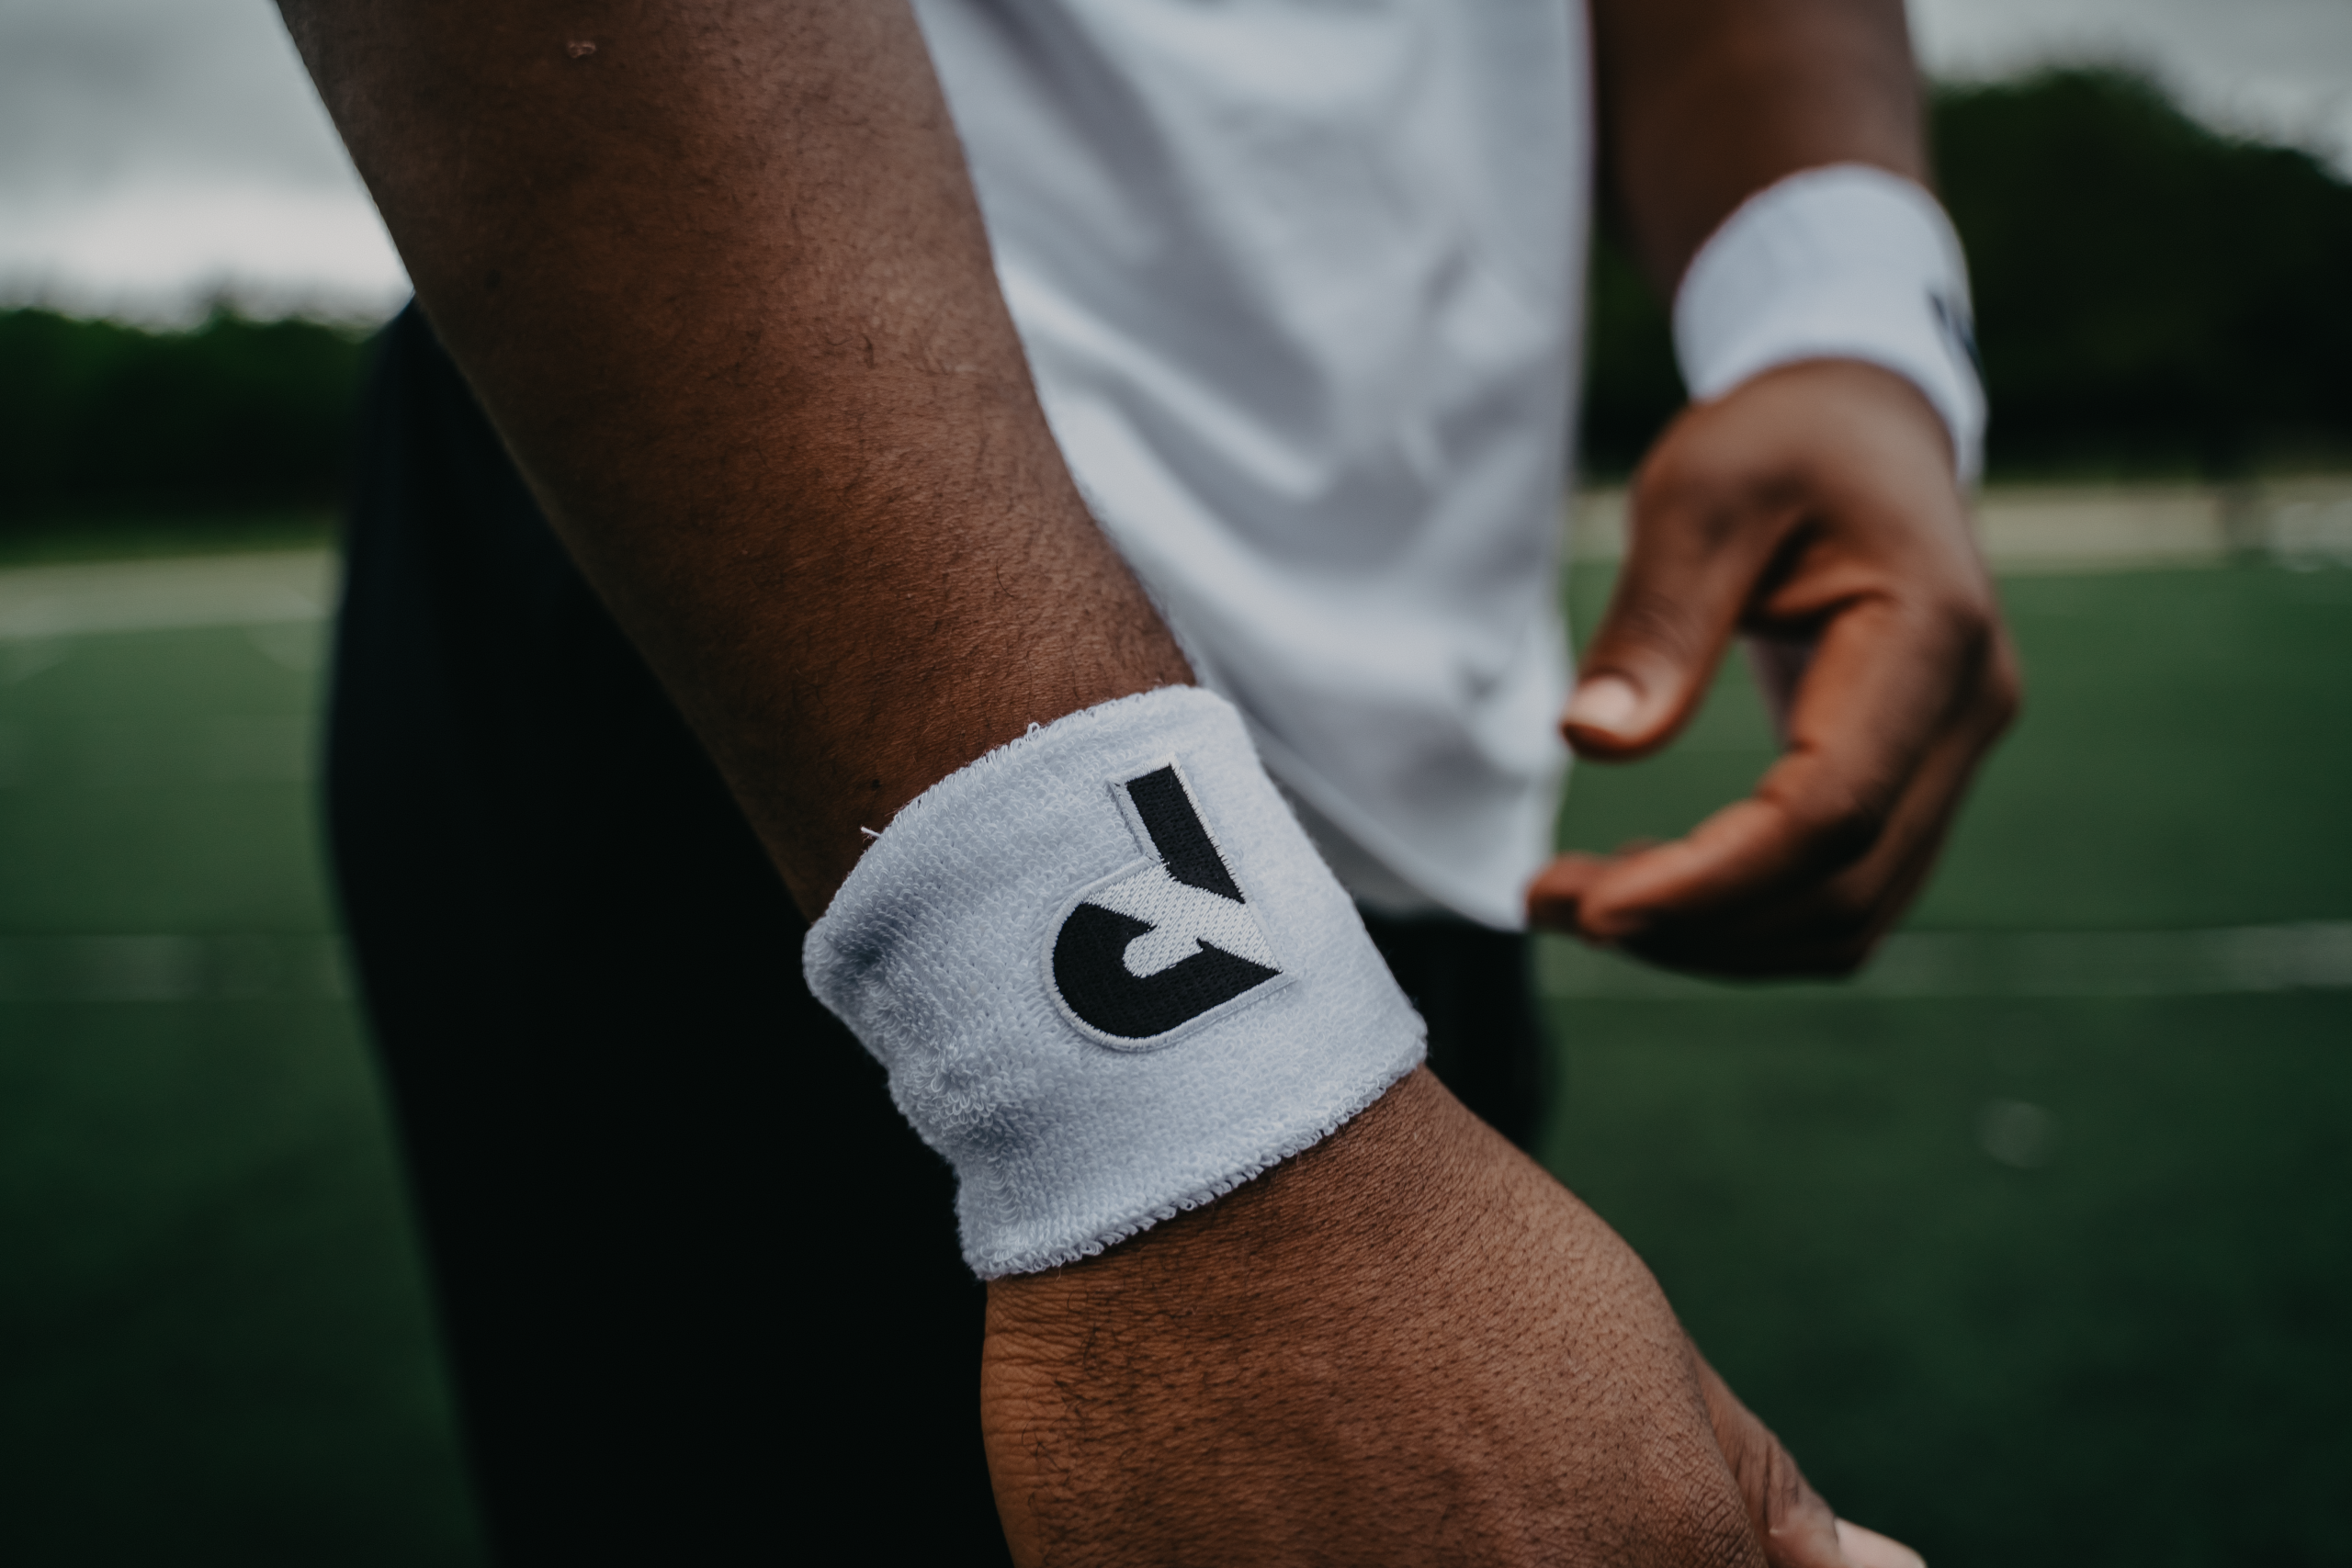 White Performance Wristbands (2-Pack)